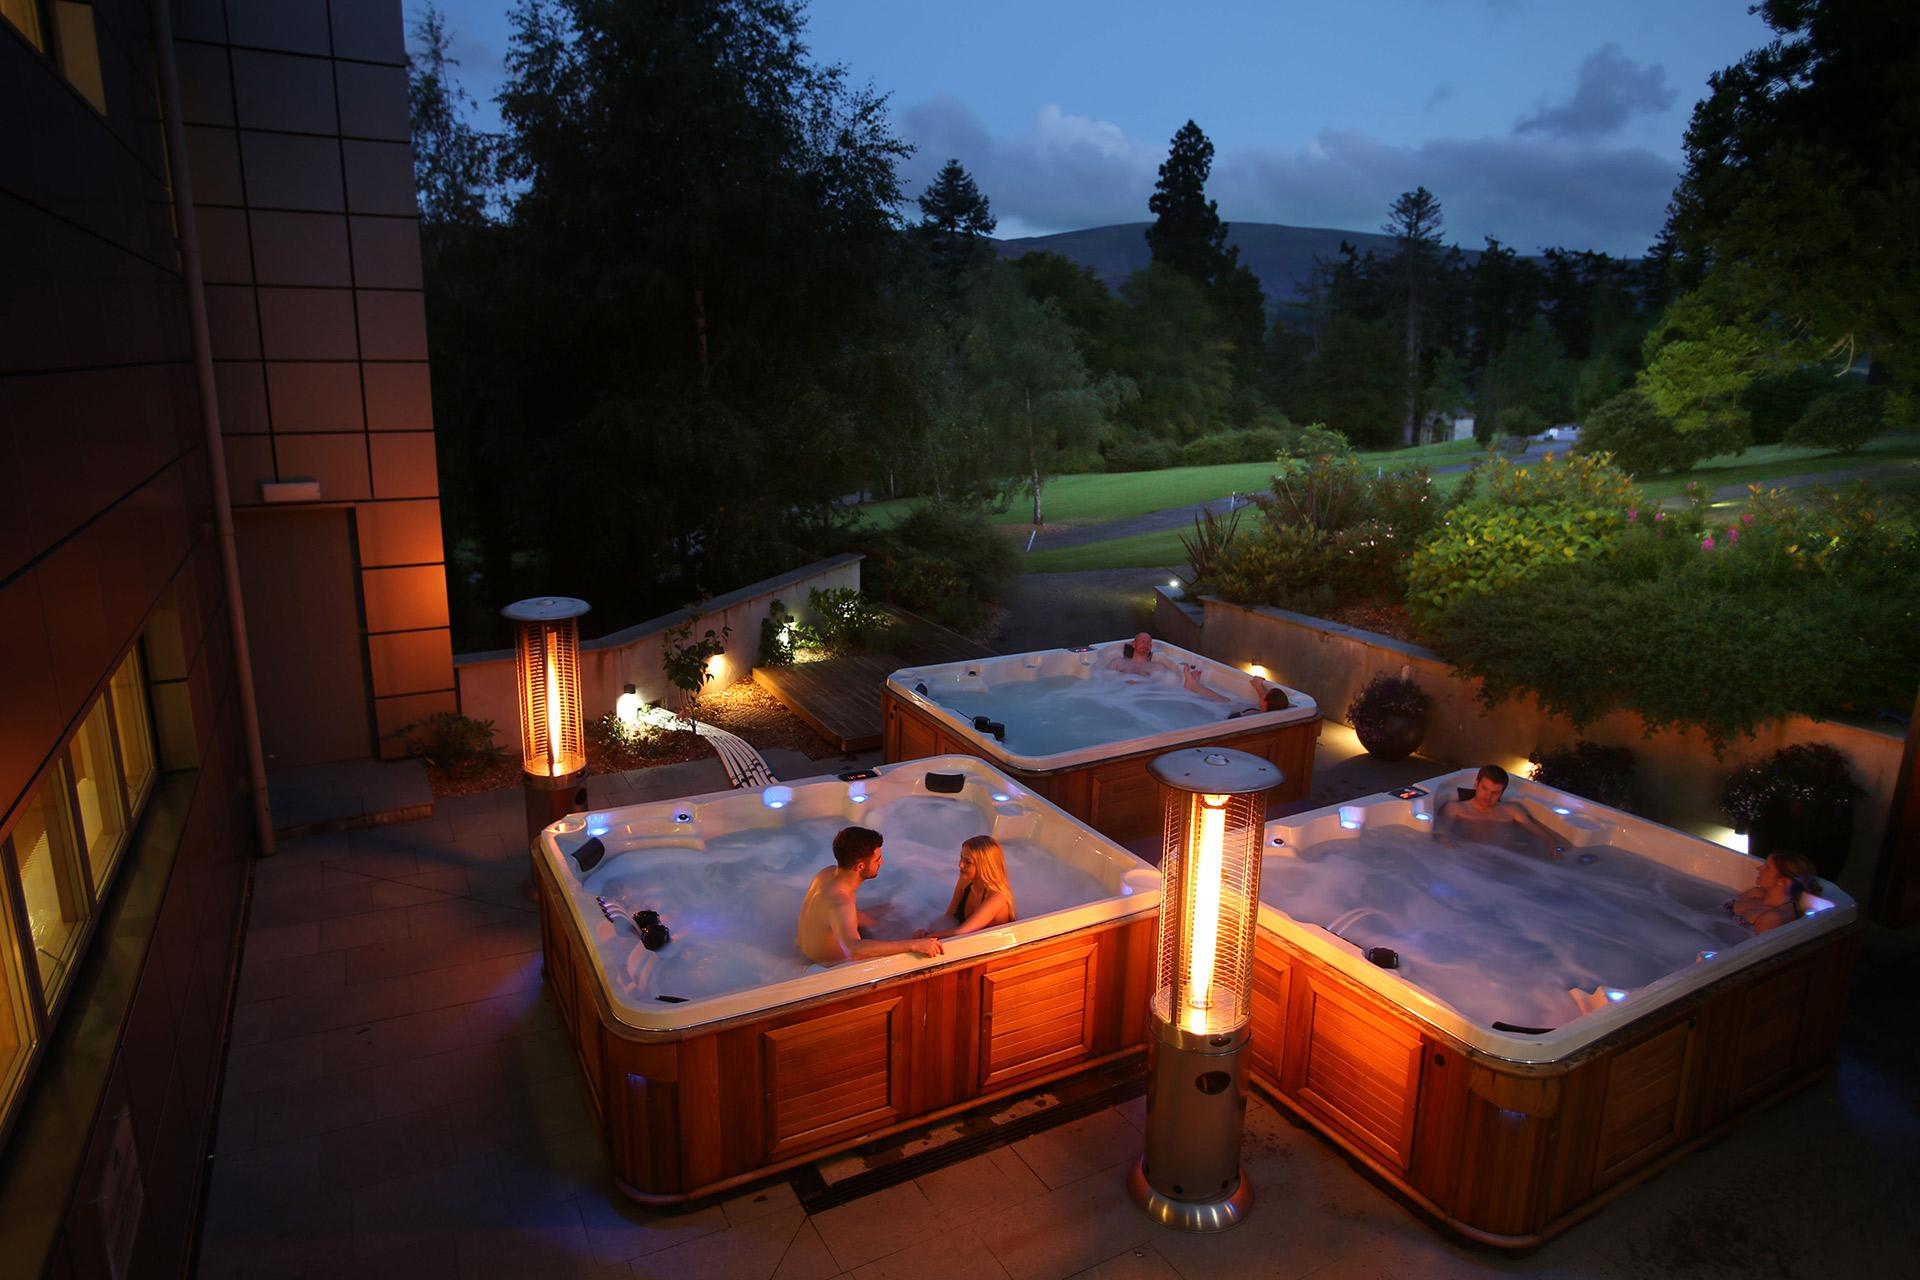 Short breaks and trip ideas in scotland visitscotland - Hotels with swimming pools in scotland ...